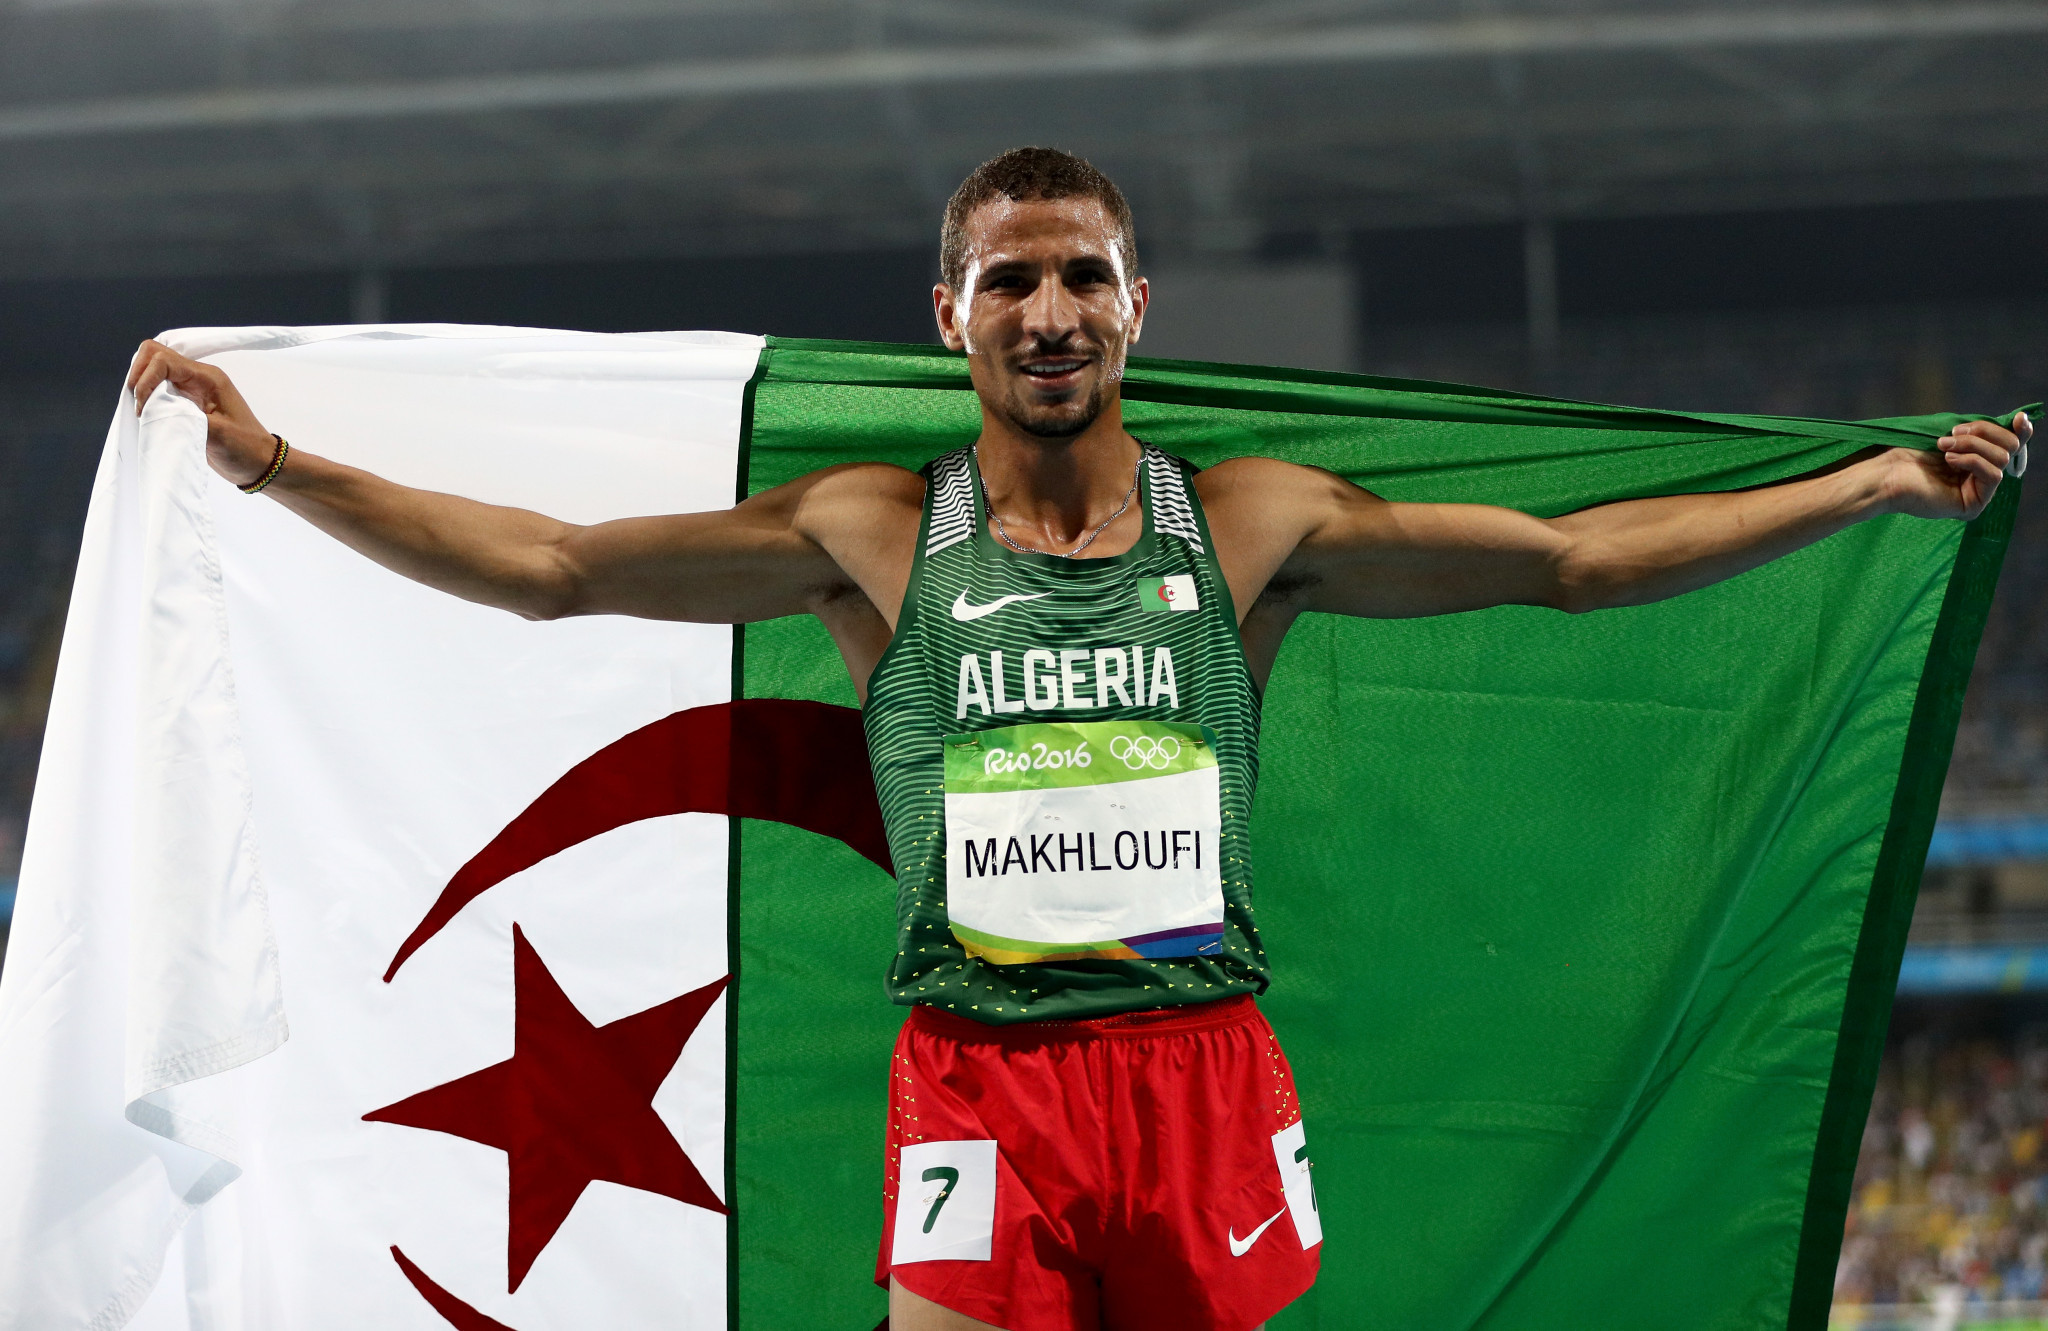 The courses are designed to improve governance in Algerian sport ©Getty Images